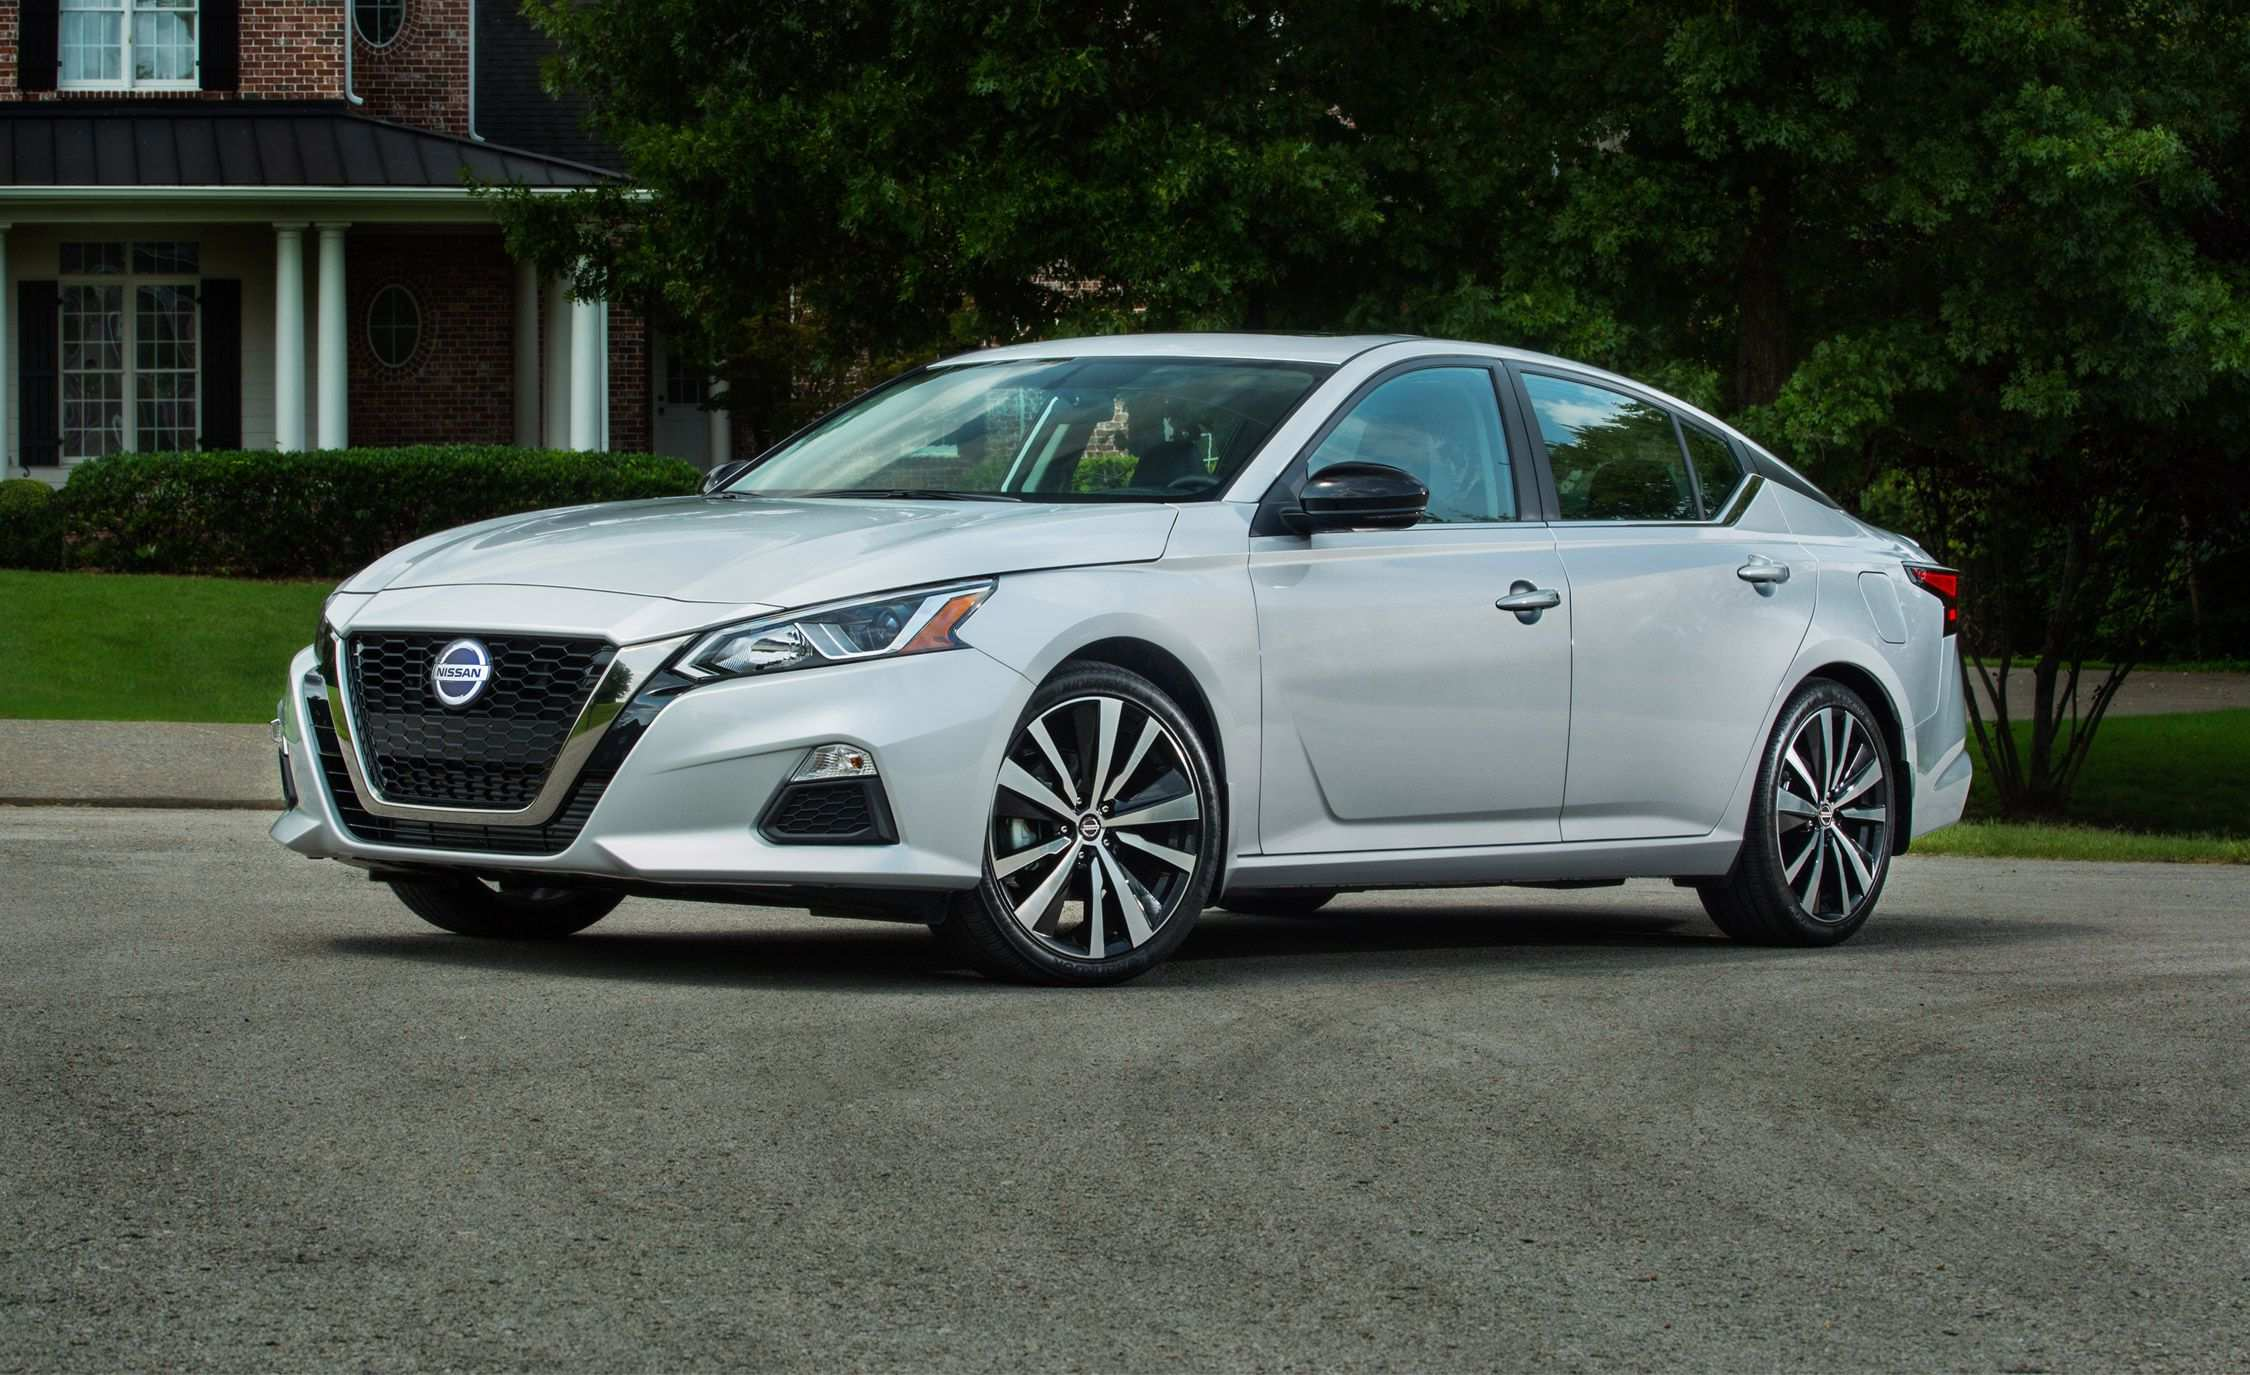 74 New 2019 Nissan Altima Engine Review by 2019 Nissan Altima Engine